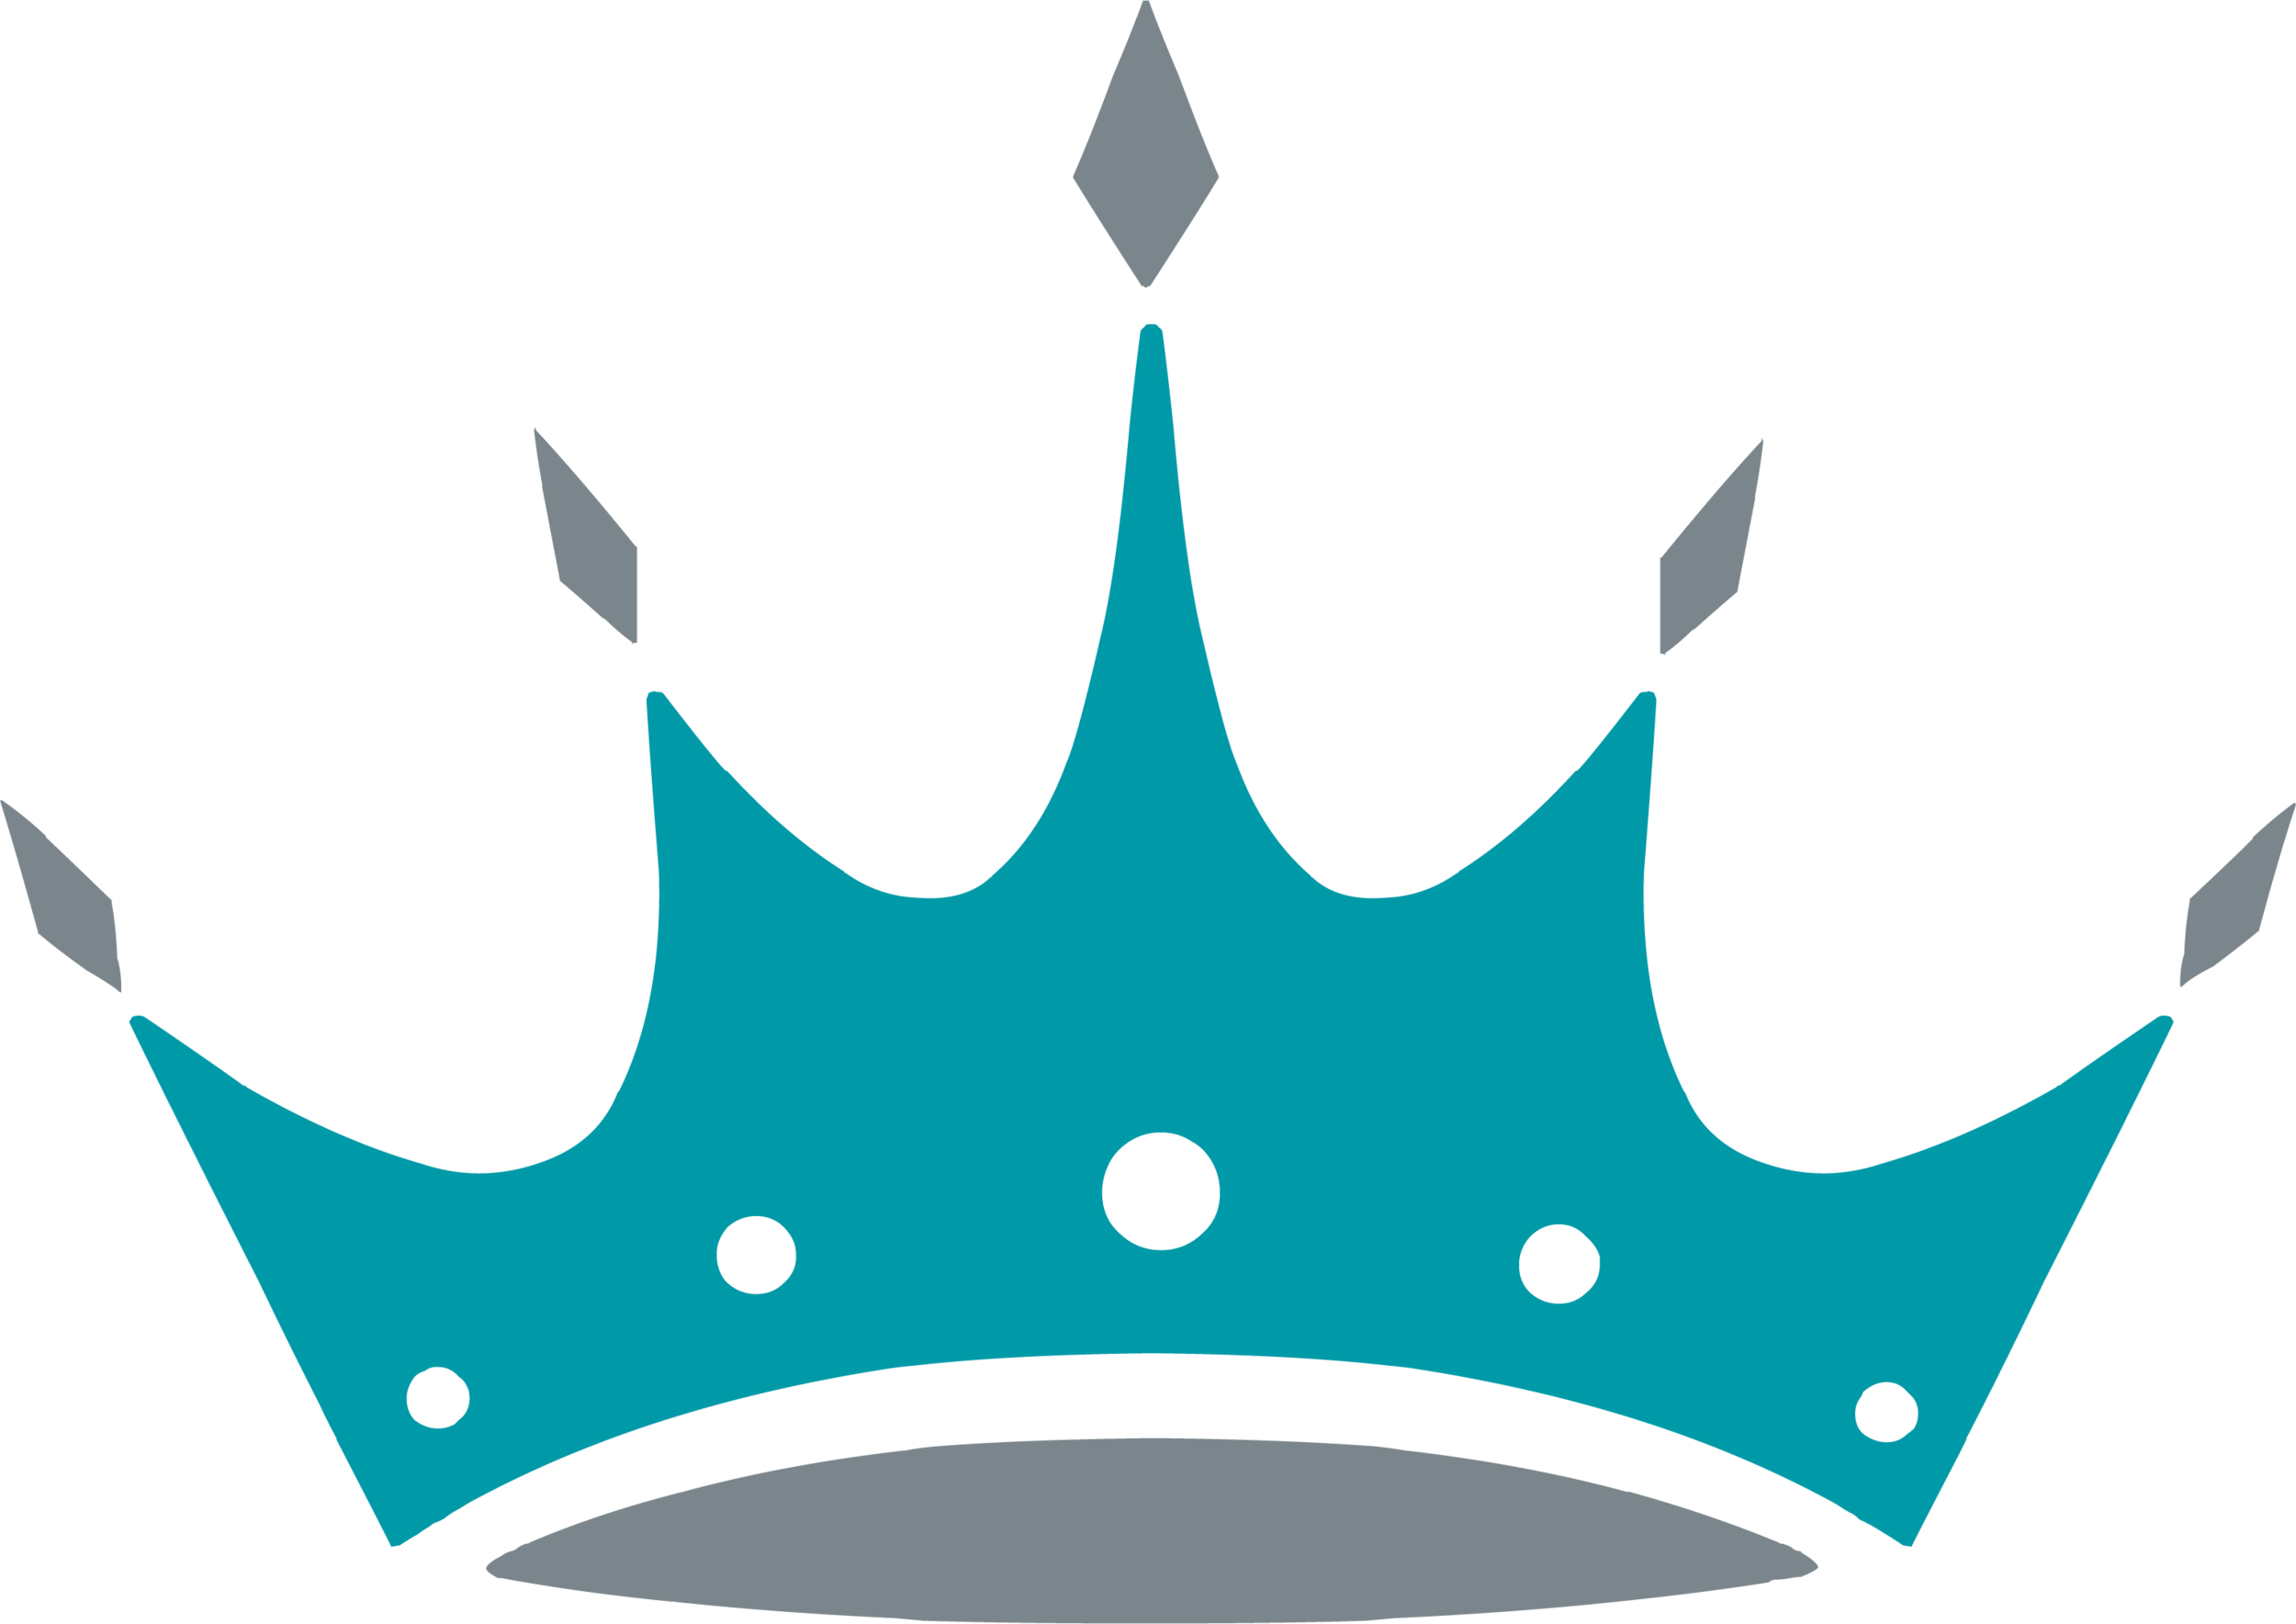 clipart-crown-teal-13.png